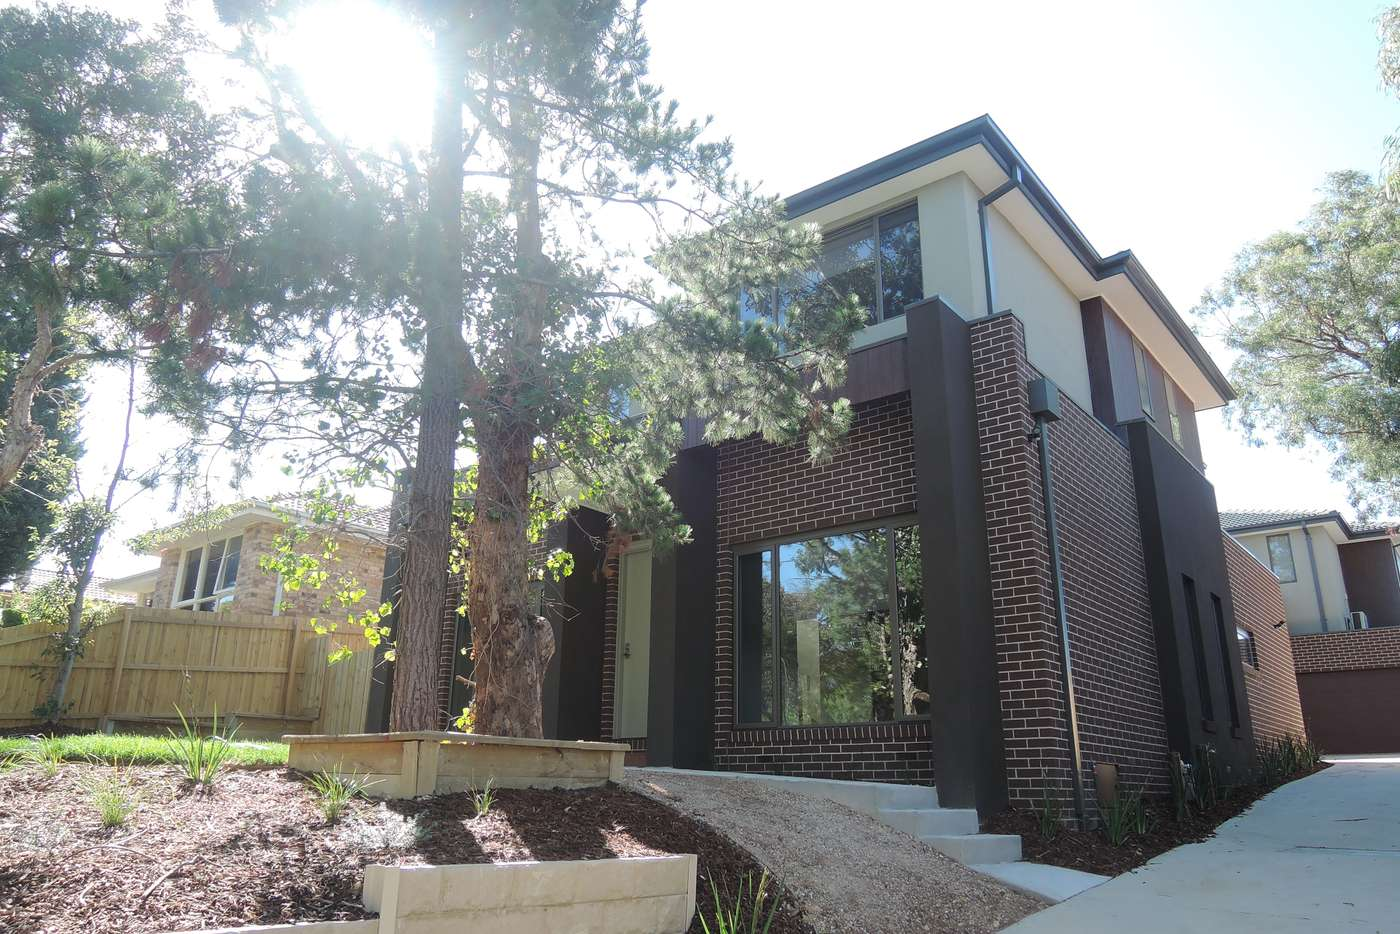 Main view of Homely townhouse listing, 1/17 Richard Street, Doncaster East VIC 3109